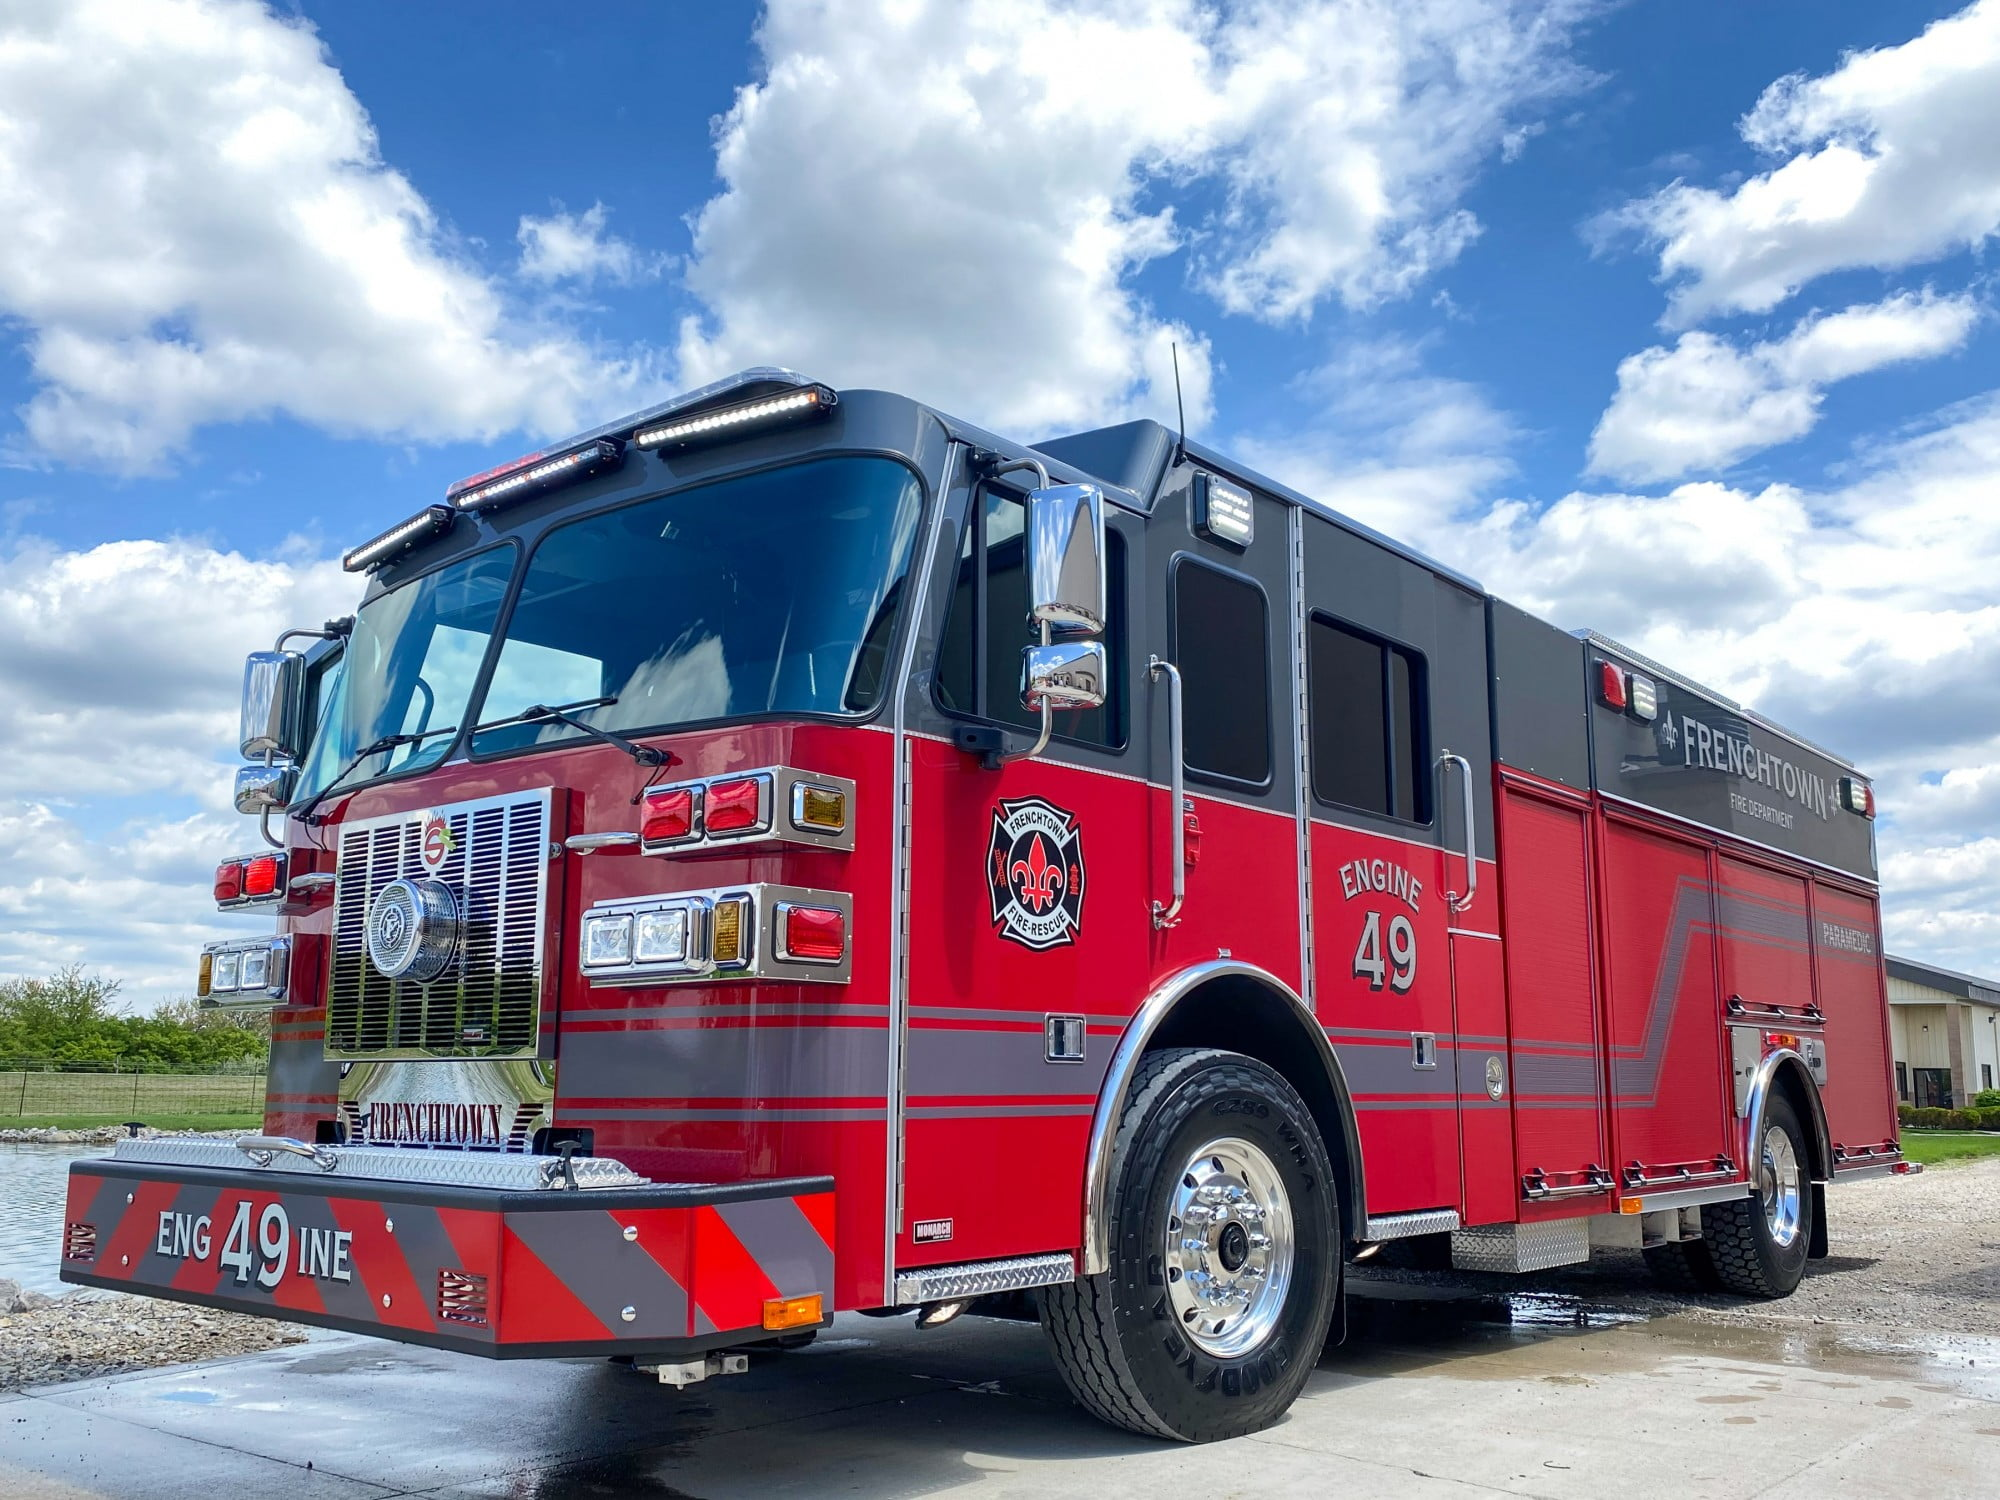 Frenchtown Fire and Rescue